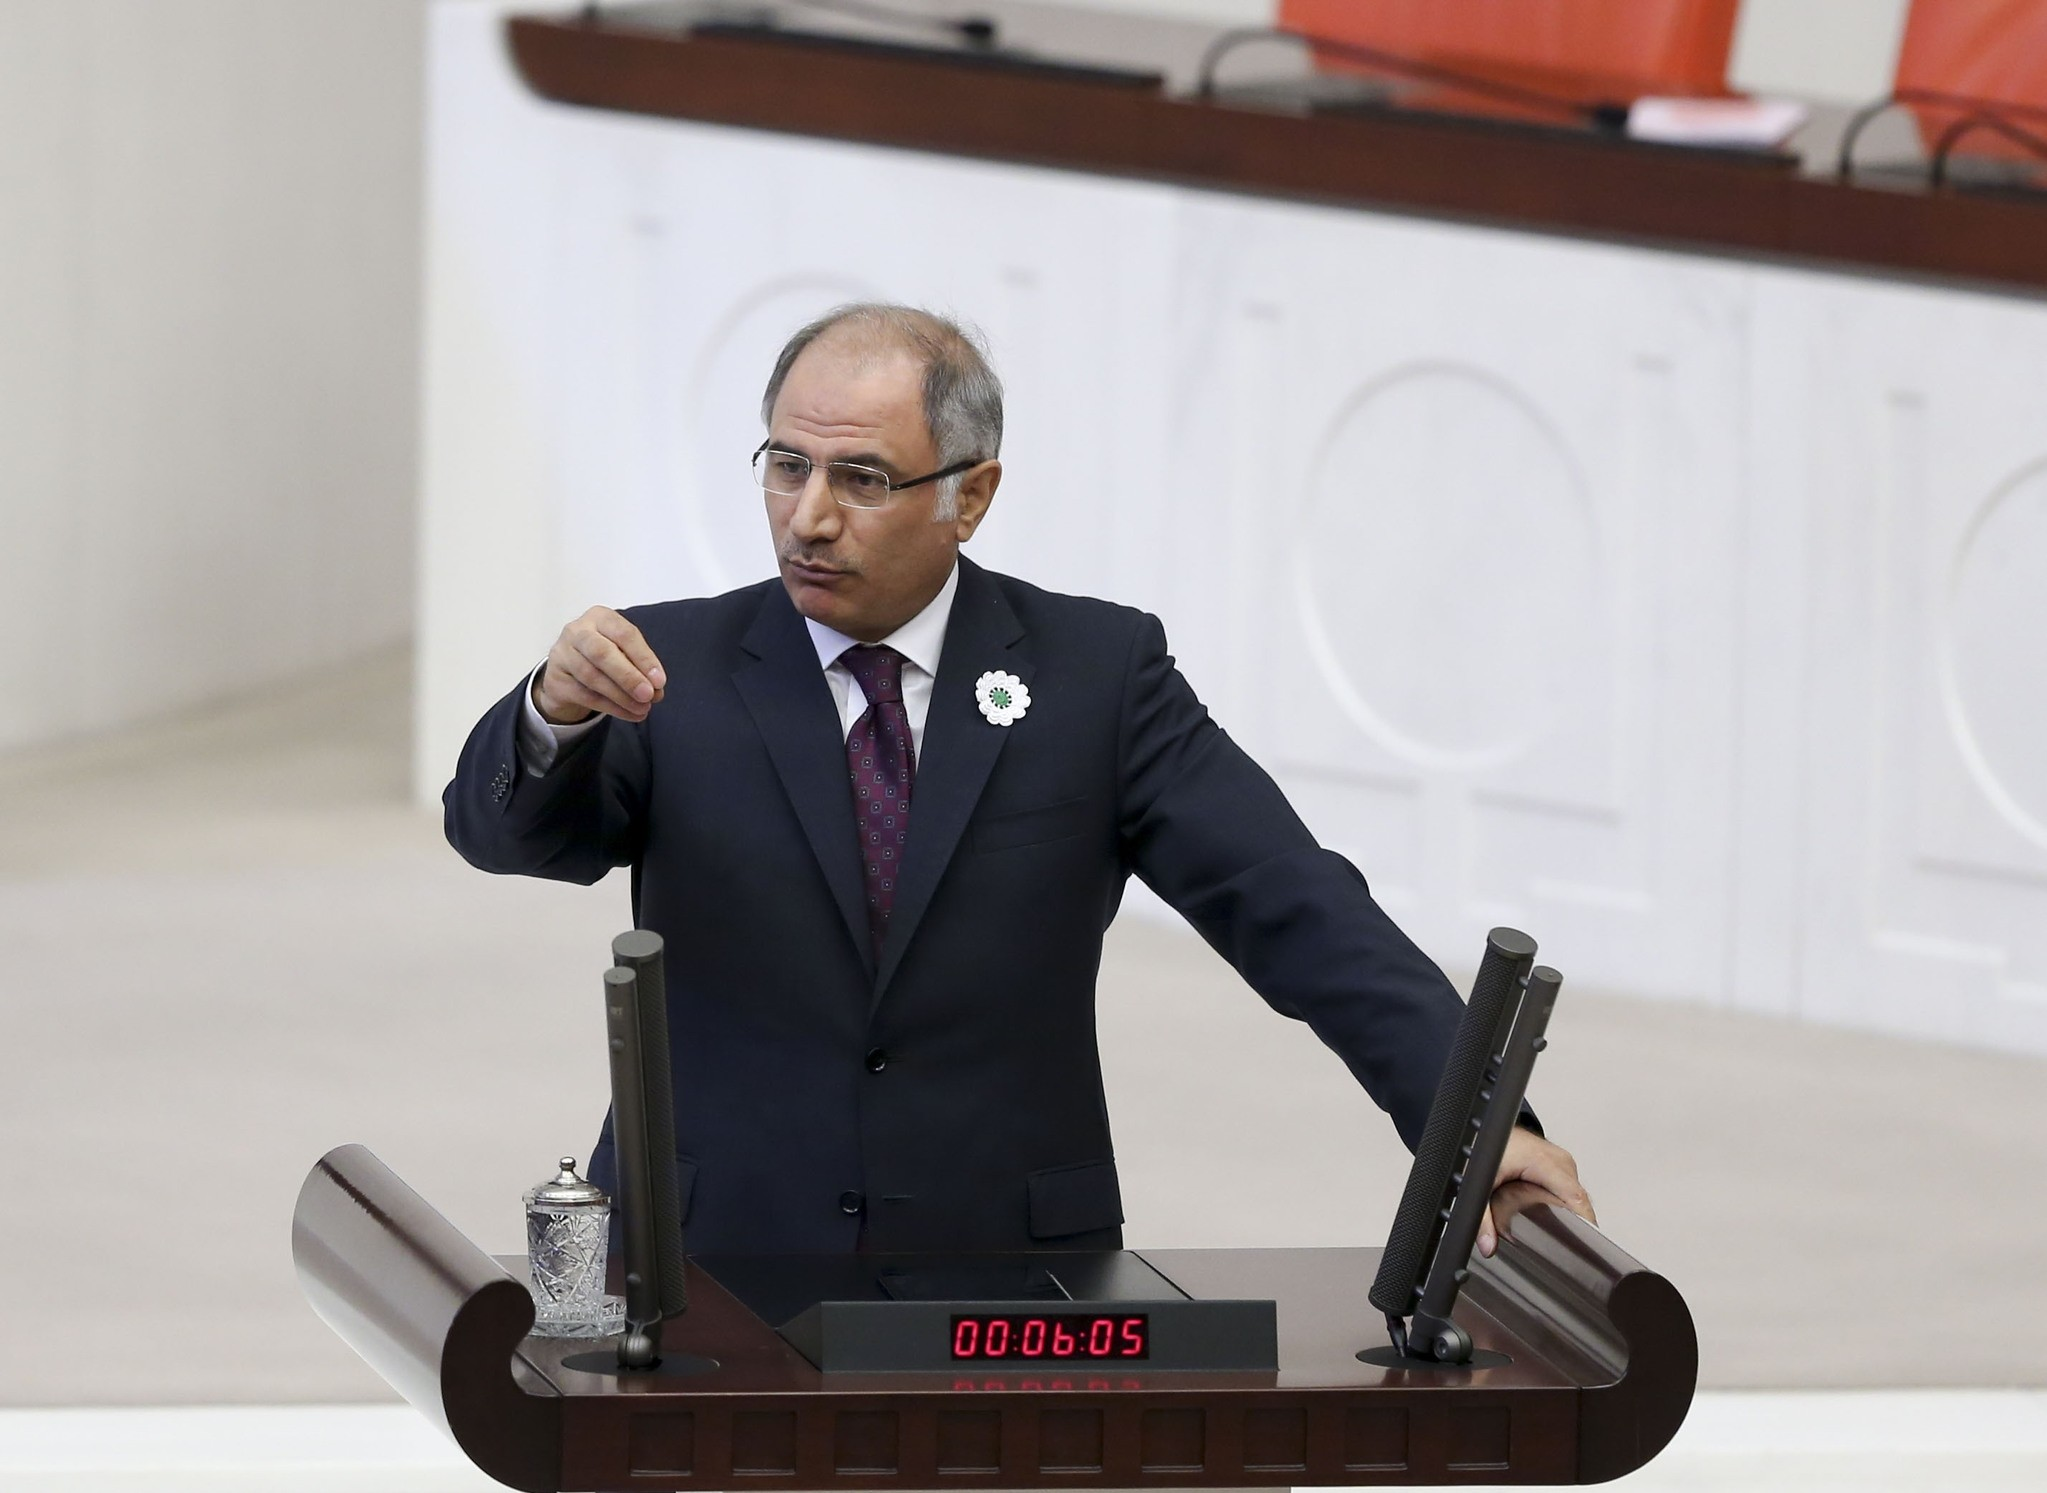 Interior Minister Efkan Ala delivering a speech in the TGNA in Ankara on July 12, 2016. (AA Photo)